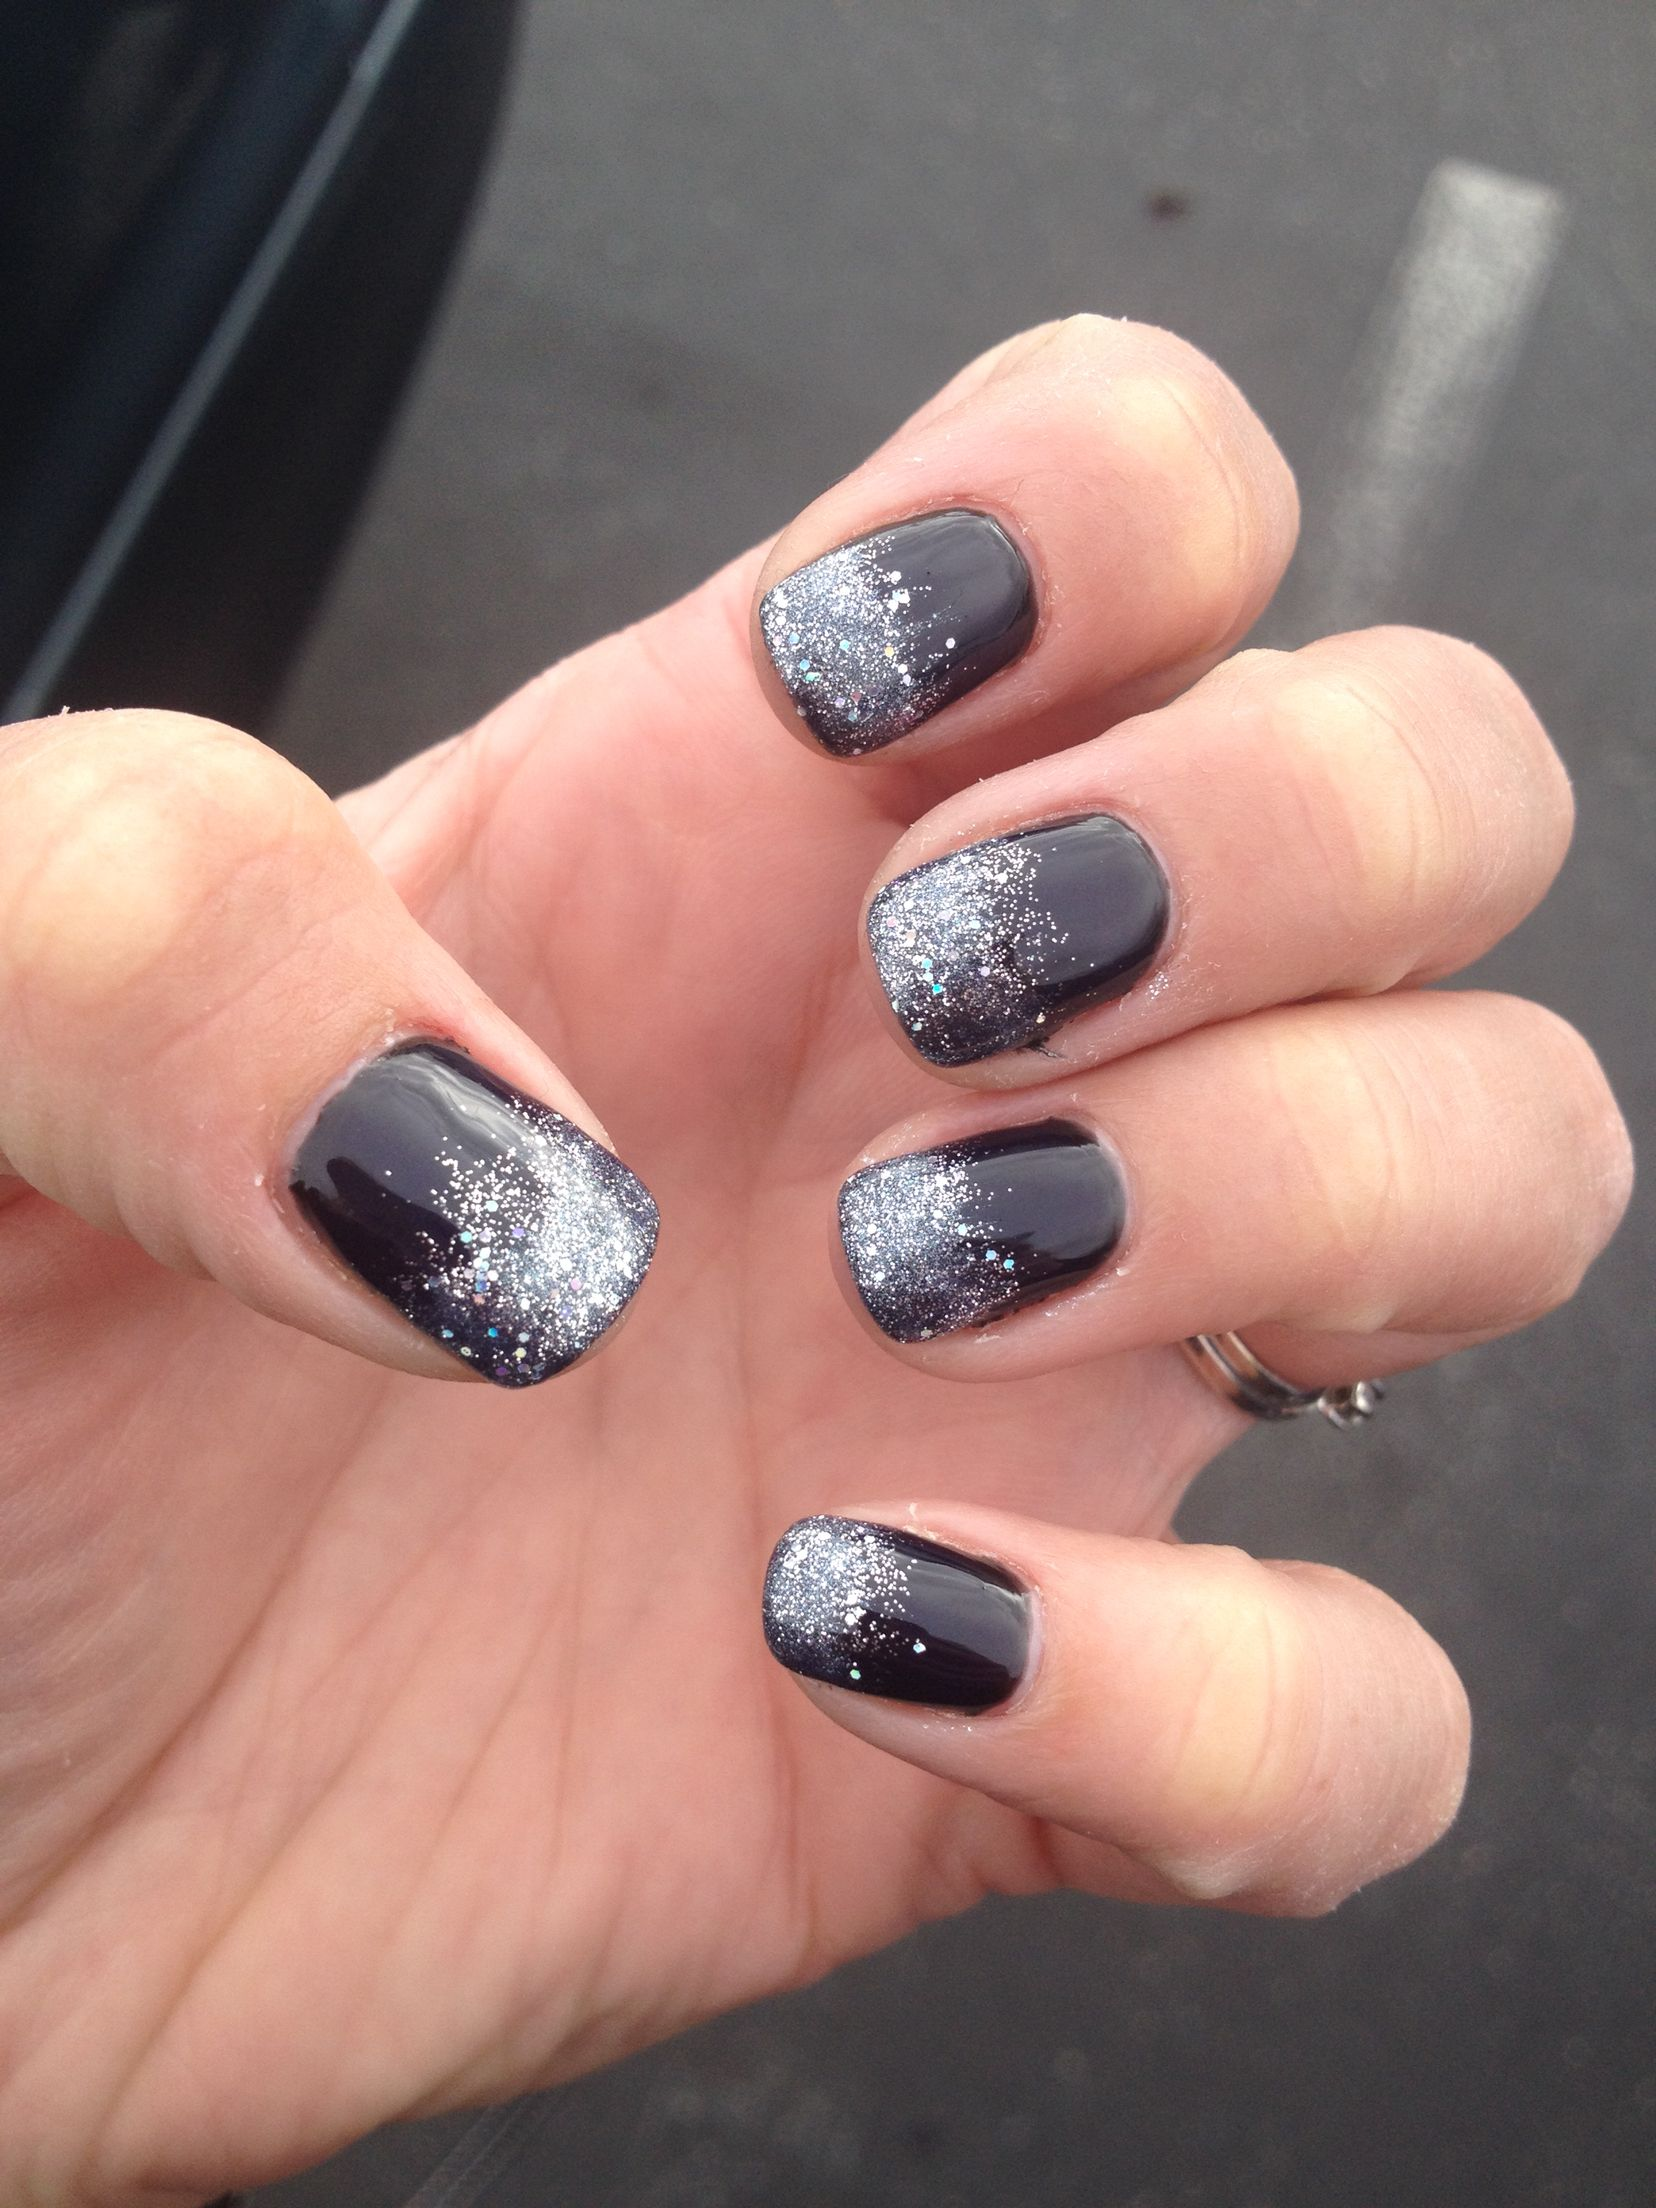 Gell Manicure, Shellac, Nail Design, Simple Nails, Sparkle